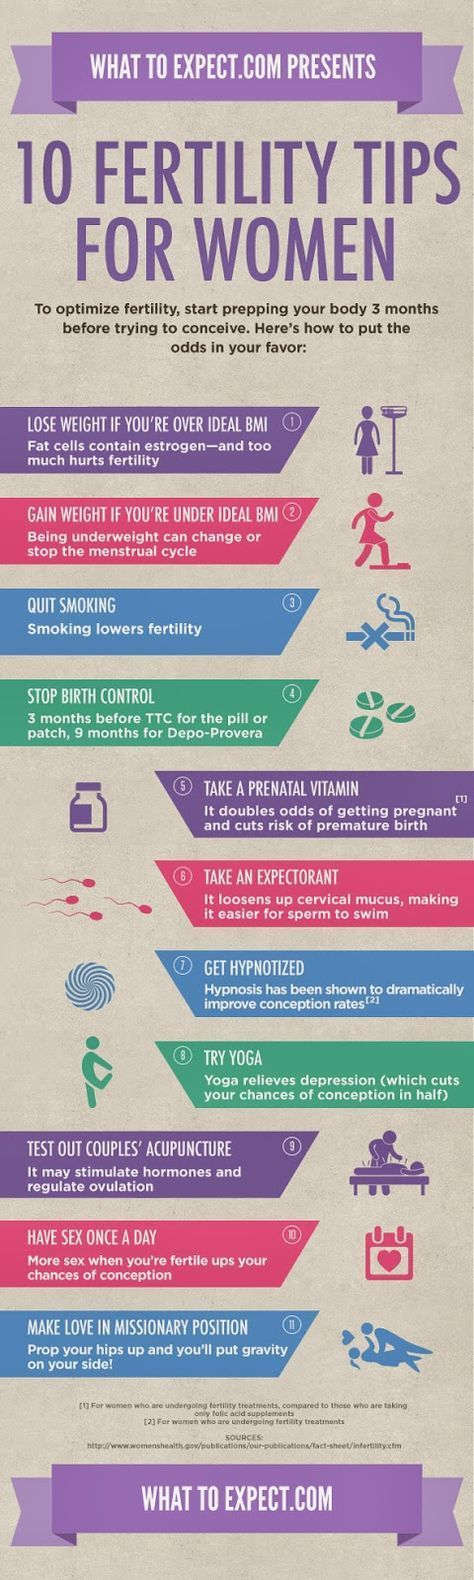 Anything but Ordinary!: Trying to Conceive (TTC): Natural Fertility Tips